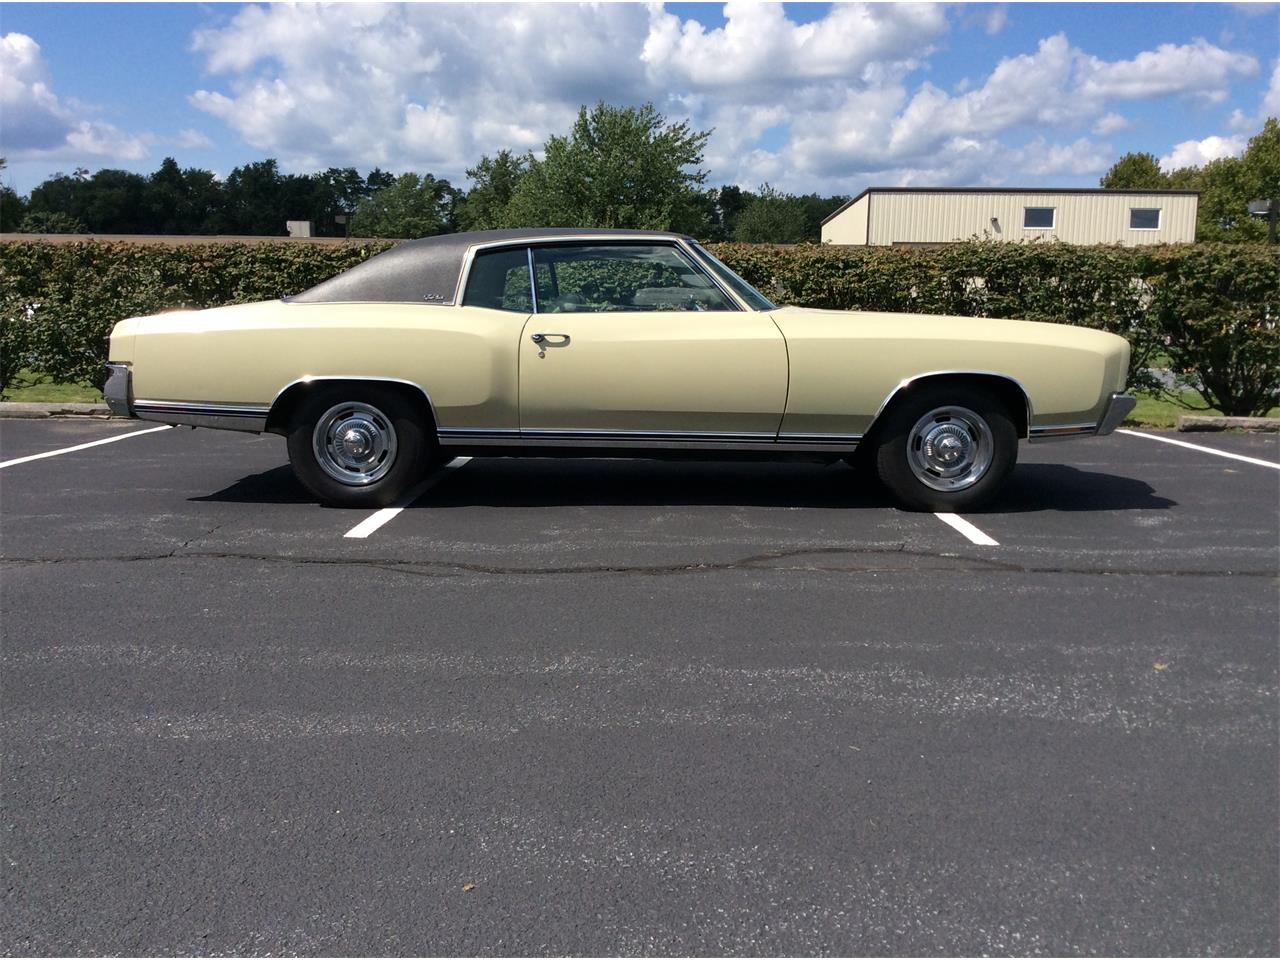 Large Picture of 1972 Chevrolet Monte Carlo - $24,500.00 - OBLH